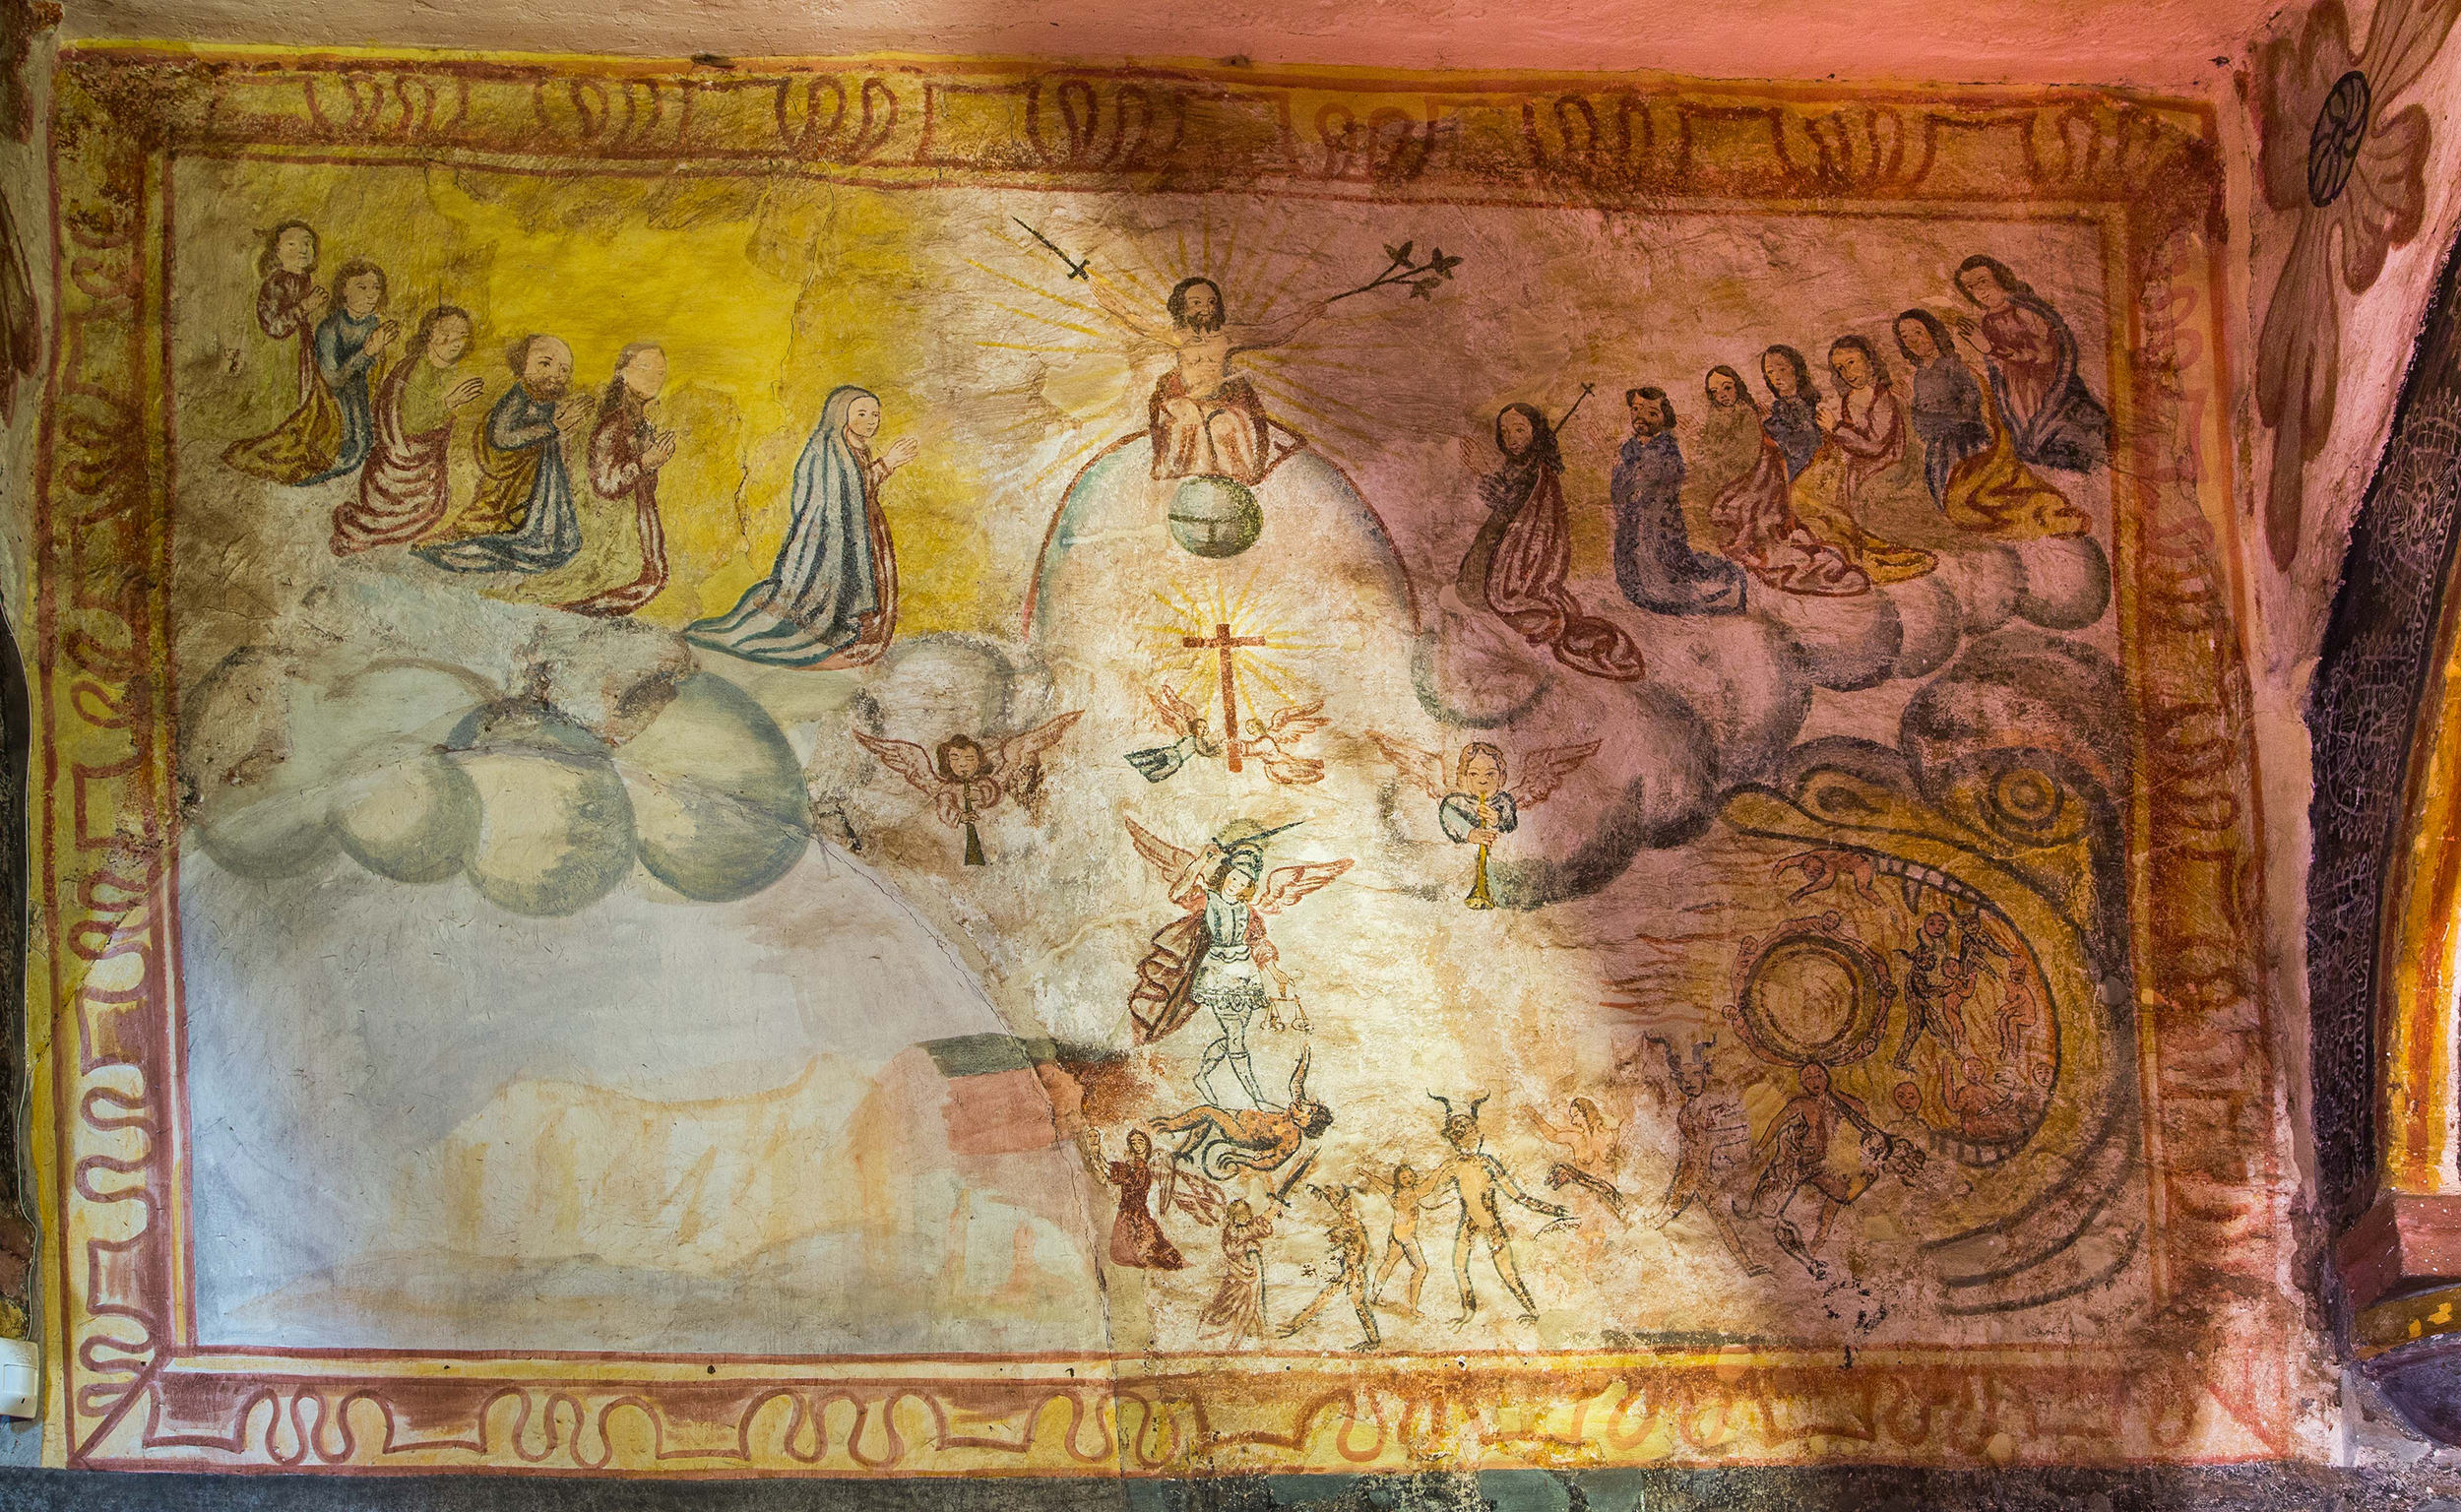 Fig. 38 Last Judgment, 18th century, Church of Zurite, Anta Province. Photo by Raúl Montero Quispe. Representations of the Last Judgment abounded in churches across the southern Andes, in both mural form and in canvas paintings. A number of similarities can be found in murals of the subject in churches across Peru, Bolivia, and Chile, indicating the use of shared European print sources. For instance, this painting bears striking similarity to an 18th-century mural of the Last Judgment at the Church of Parinacota (Chile).